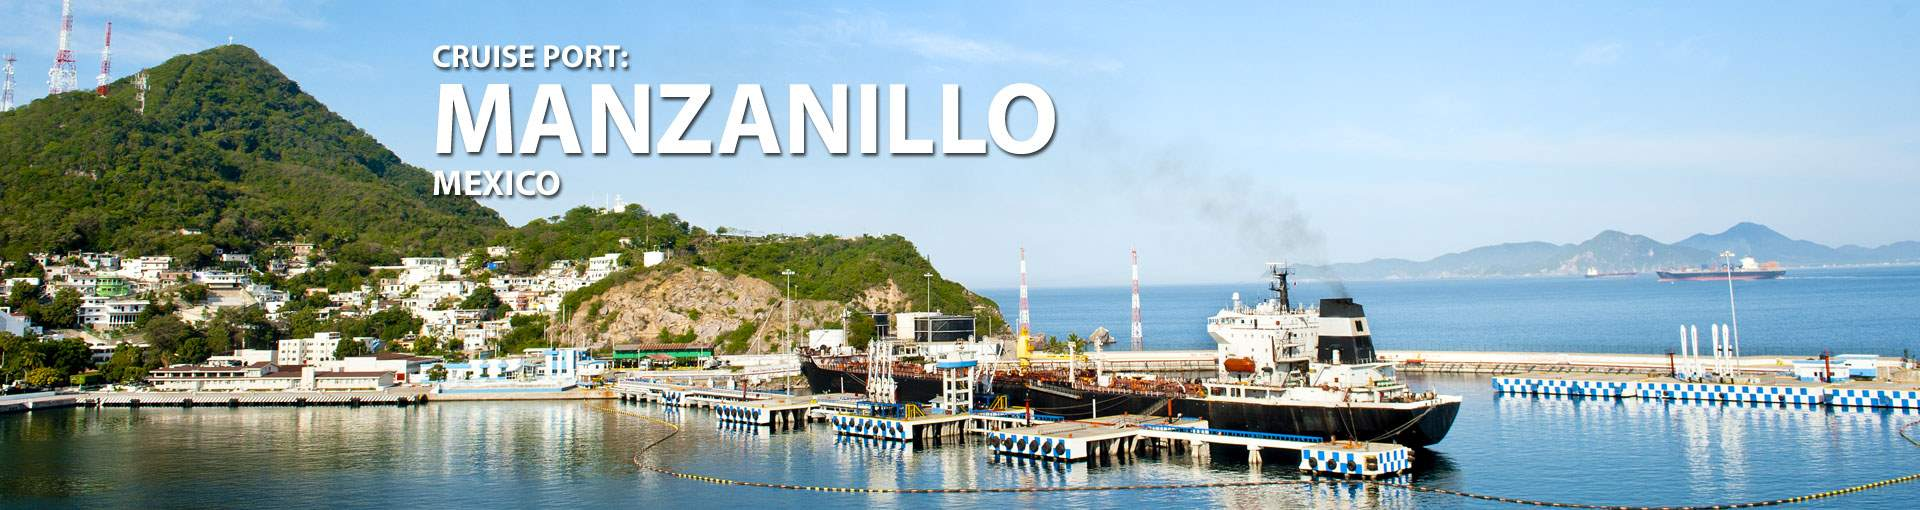 Cruises to Manzanillo, Mexico